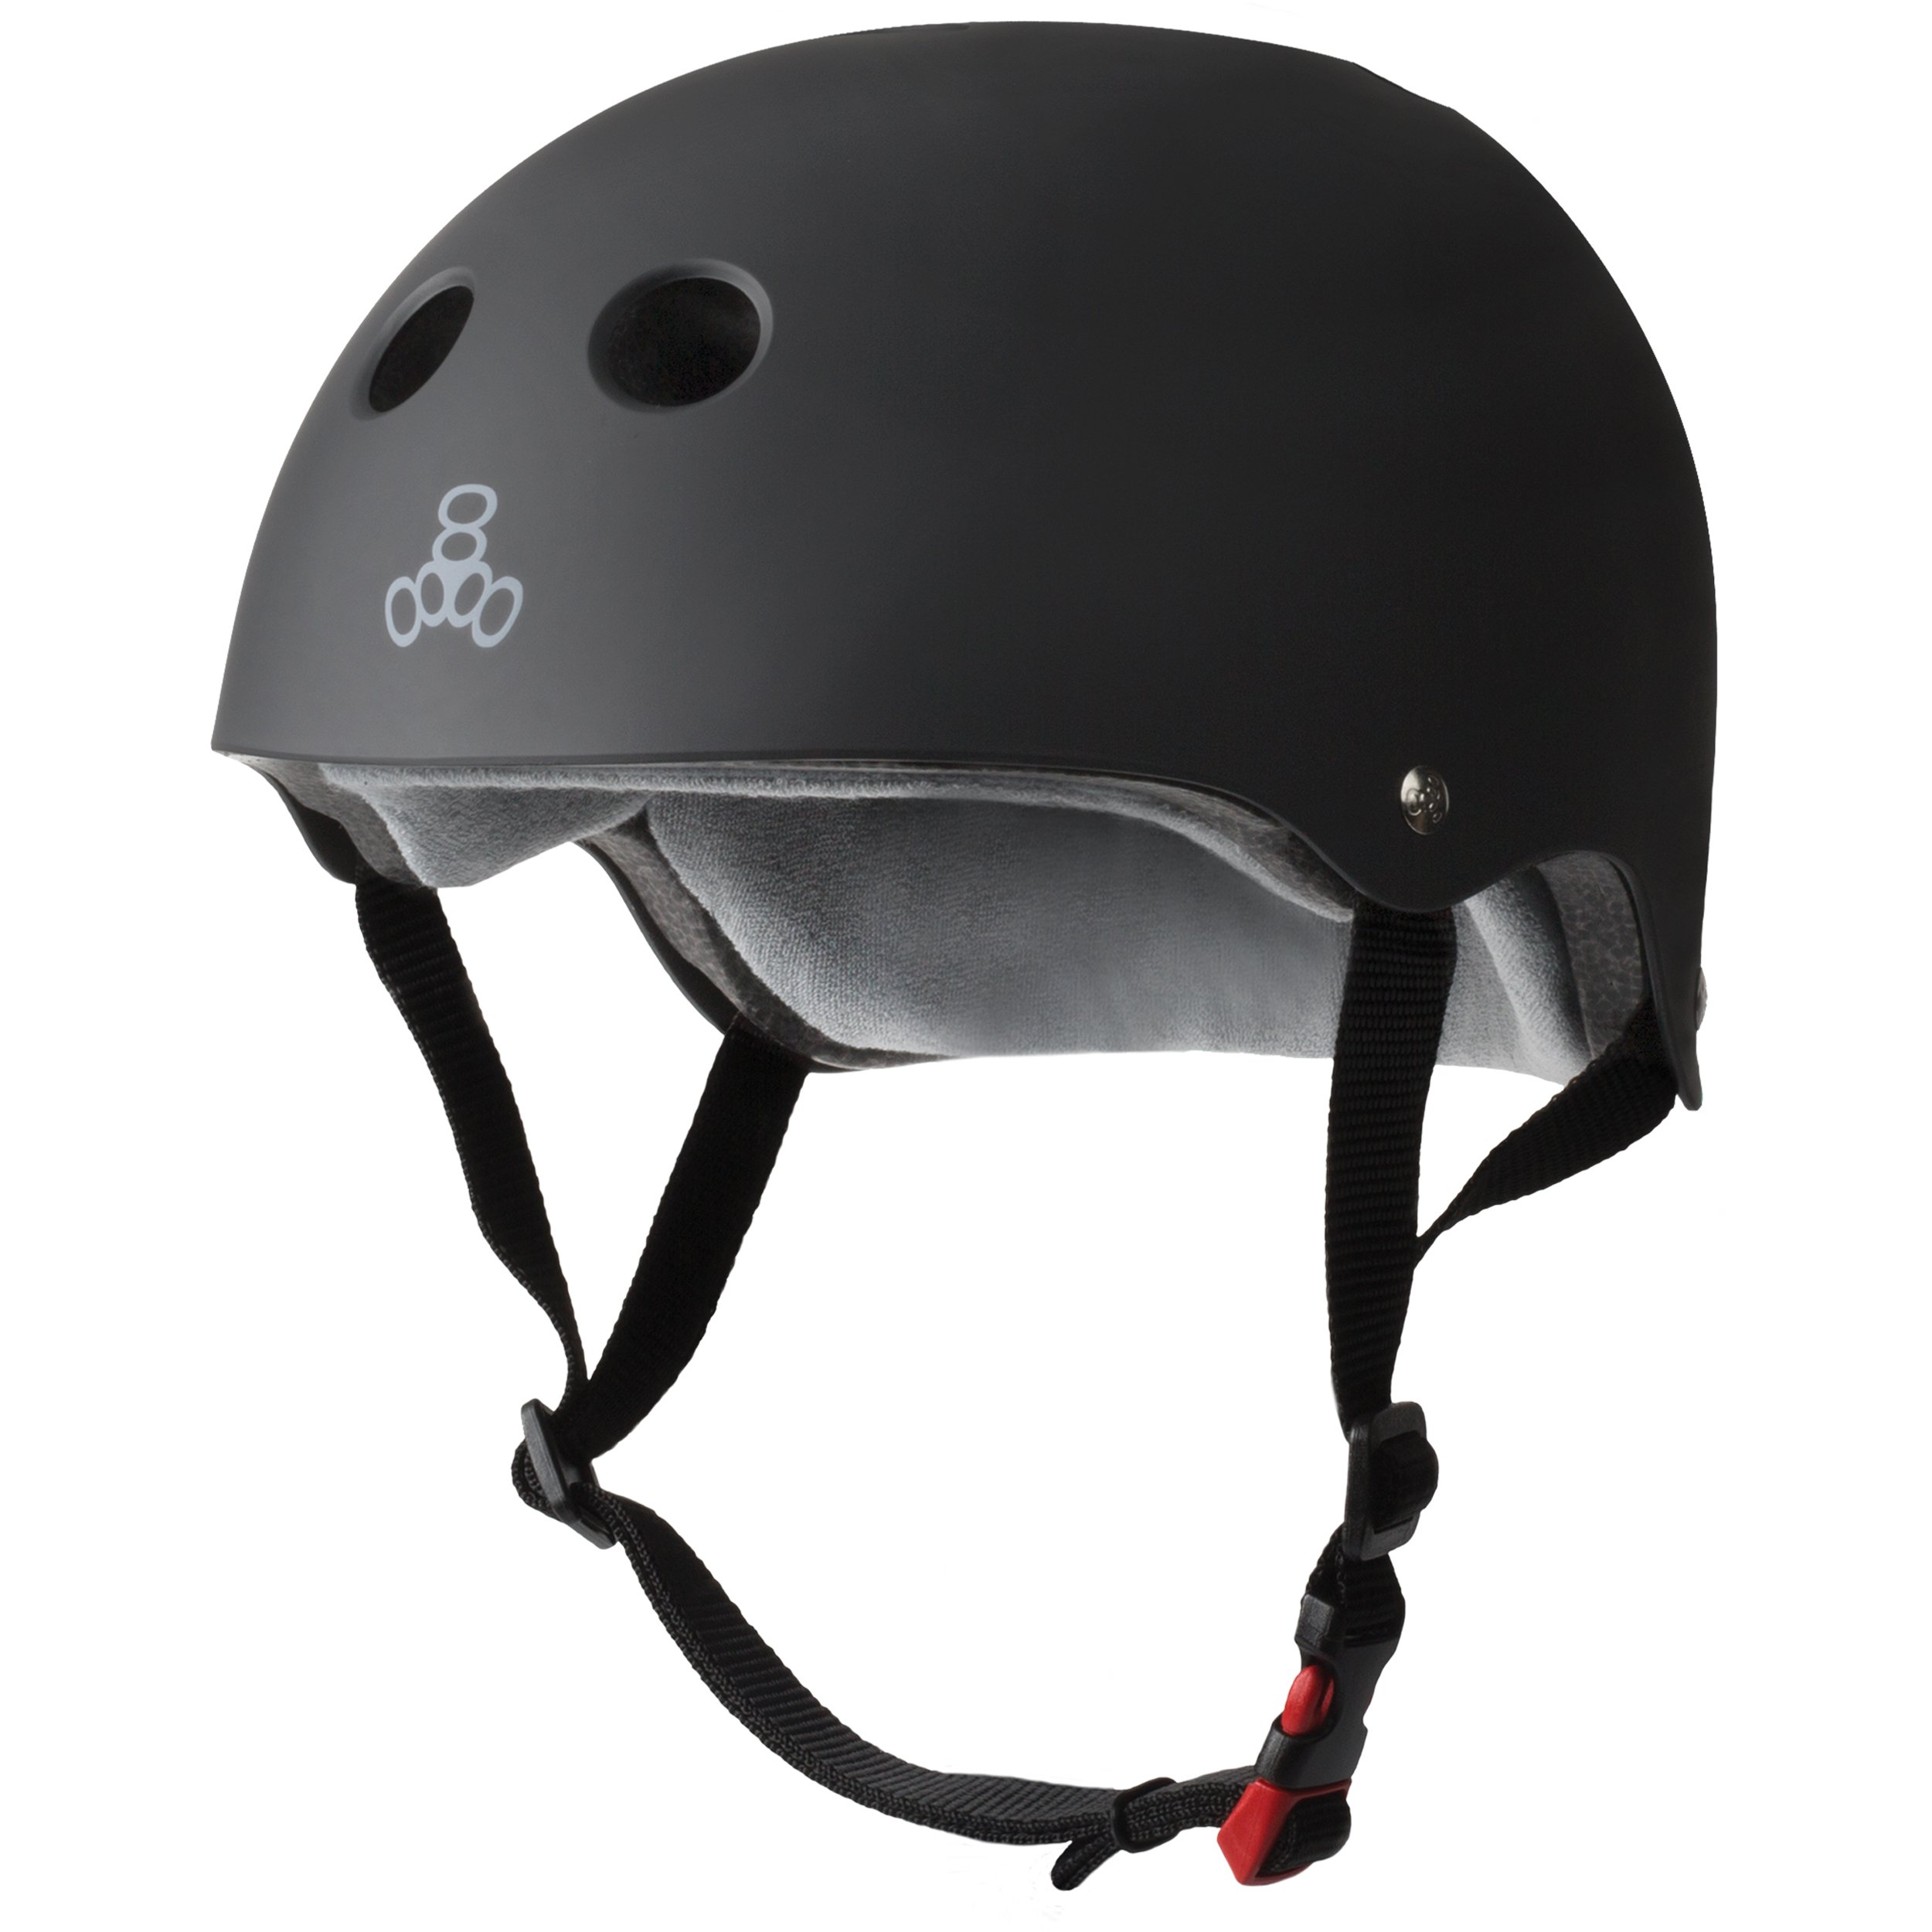 Triple Eight THE Certified Sweatsaver Helmet for Skateboarding, BMX, and Roller Skating, Black Rubber, Small / Medium by Triple Eight